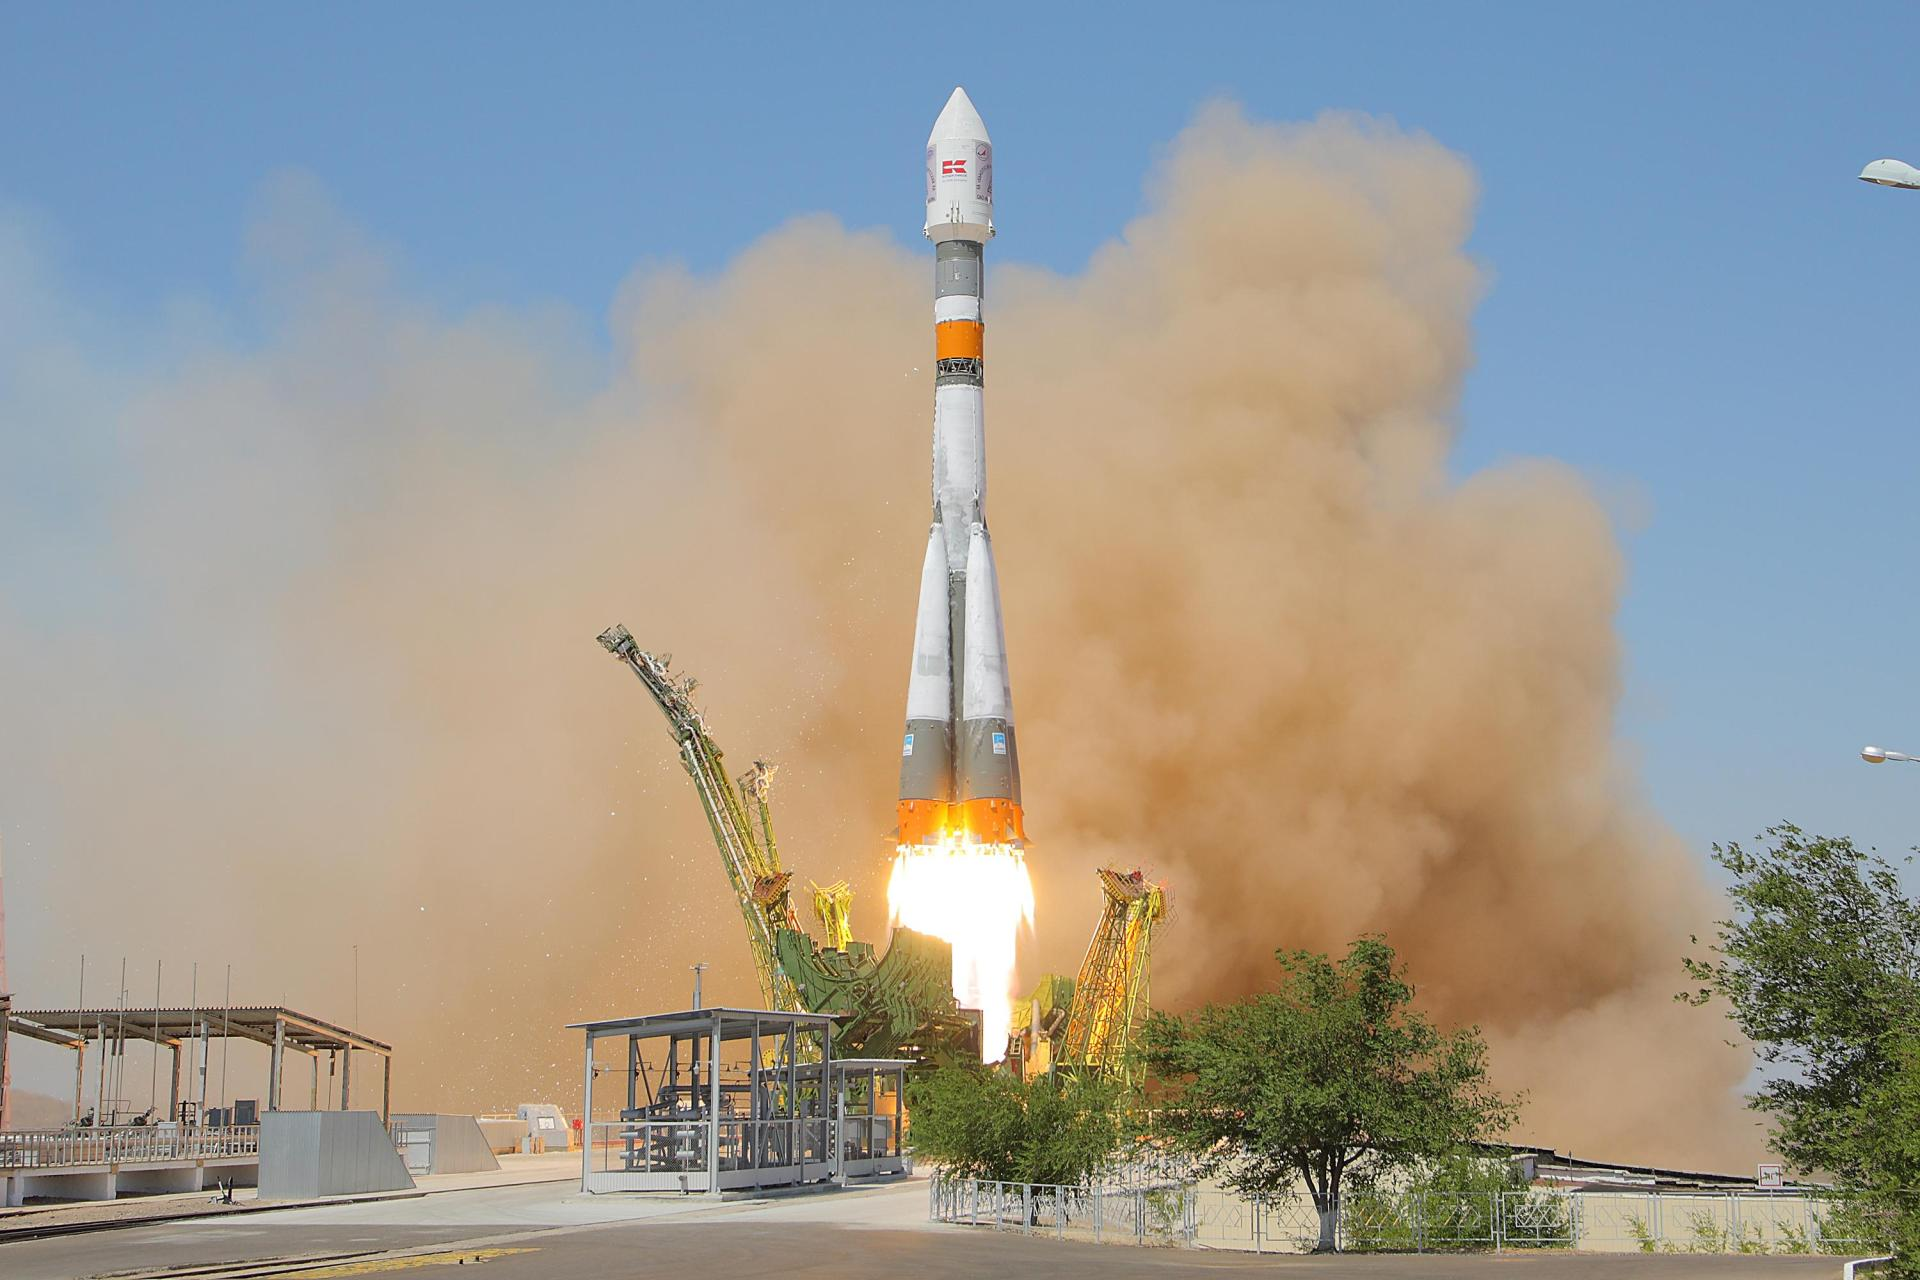 The Soyuz launch vehicle carrying TET-1 after launch on 22 July 2012